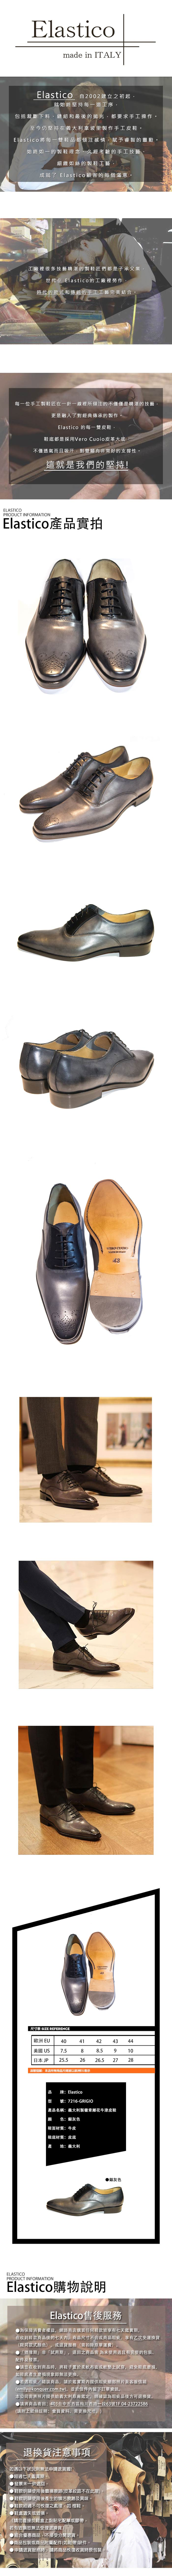 Elastico Italian badged carved Oxford shoes  7216 silver gray ... 20b95f08776